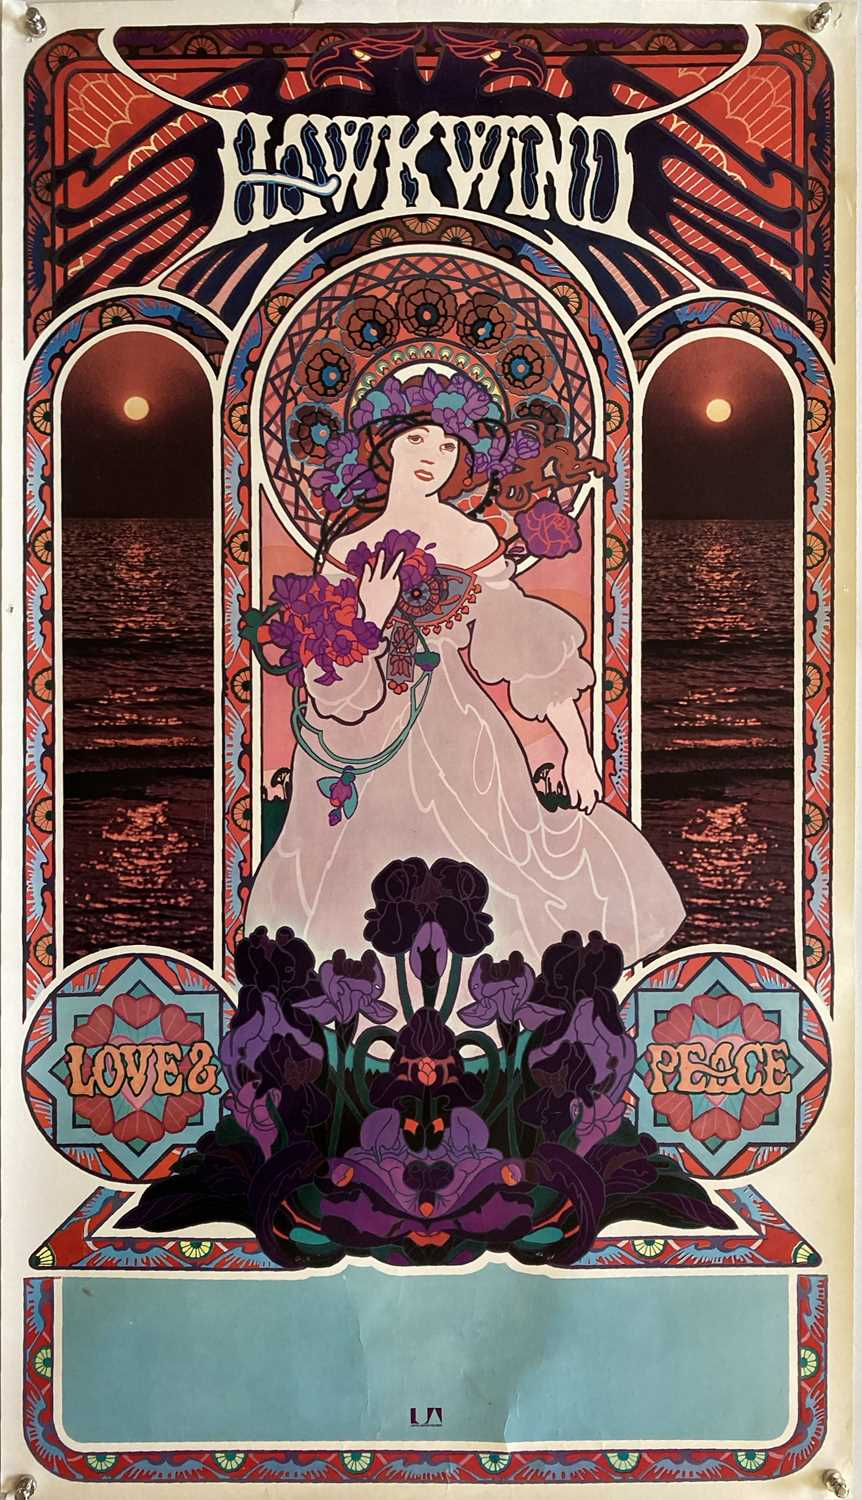 HAWKWIND - LOVE AND PEACE ORIGINAL POSTER.